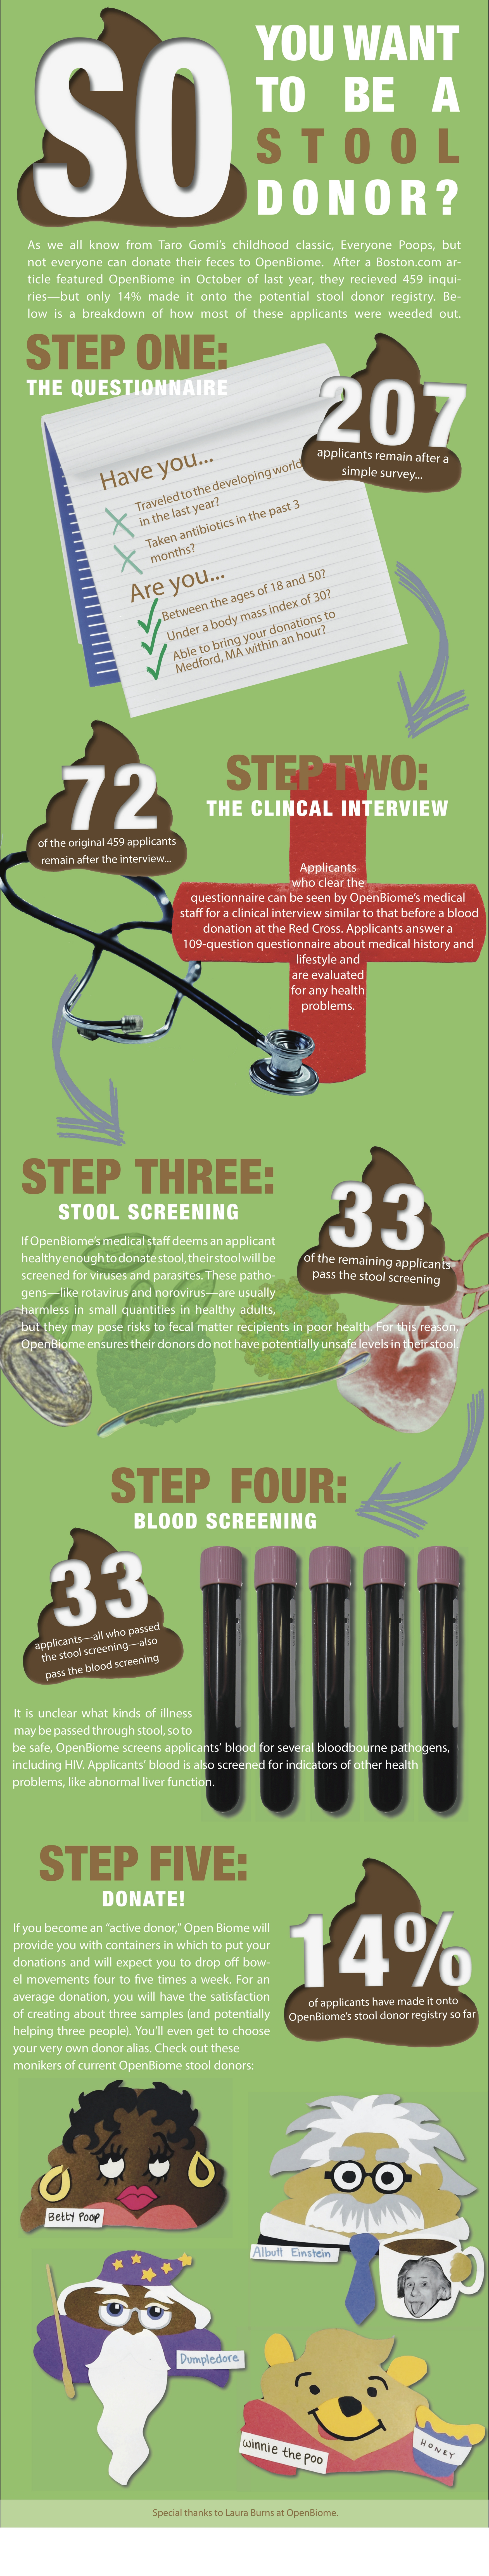 Stool Donor Infographic - Lavelle - EDITS2